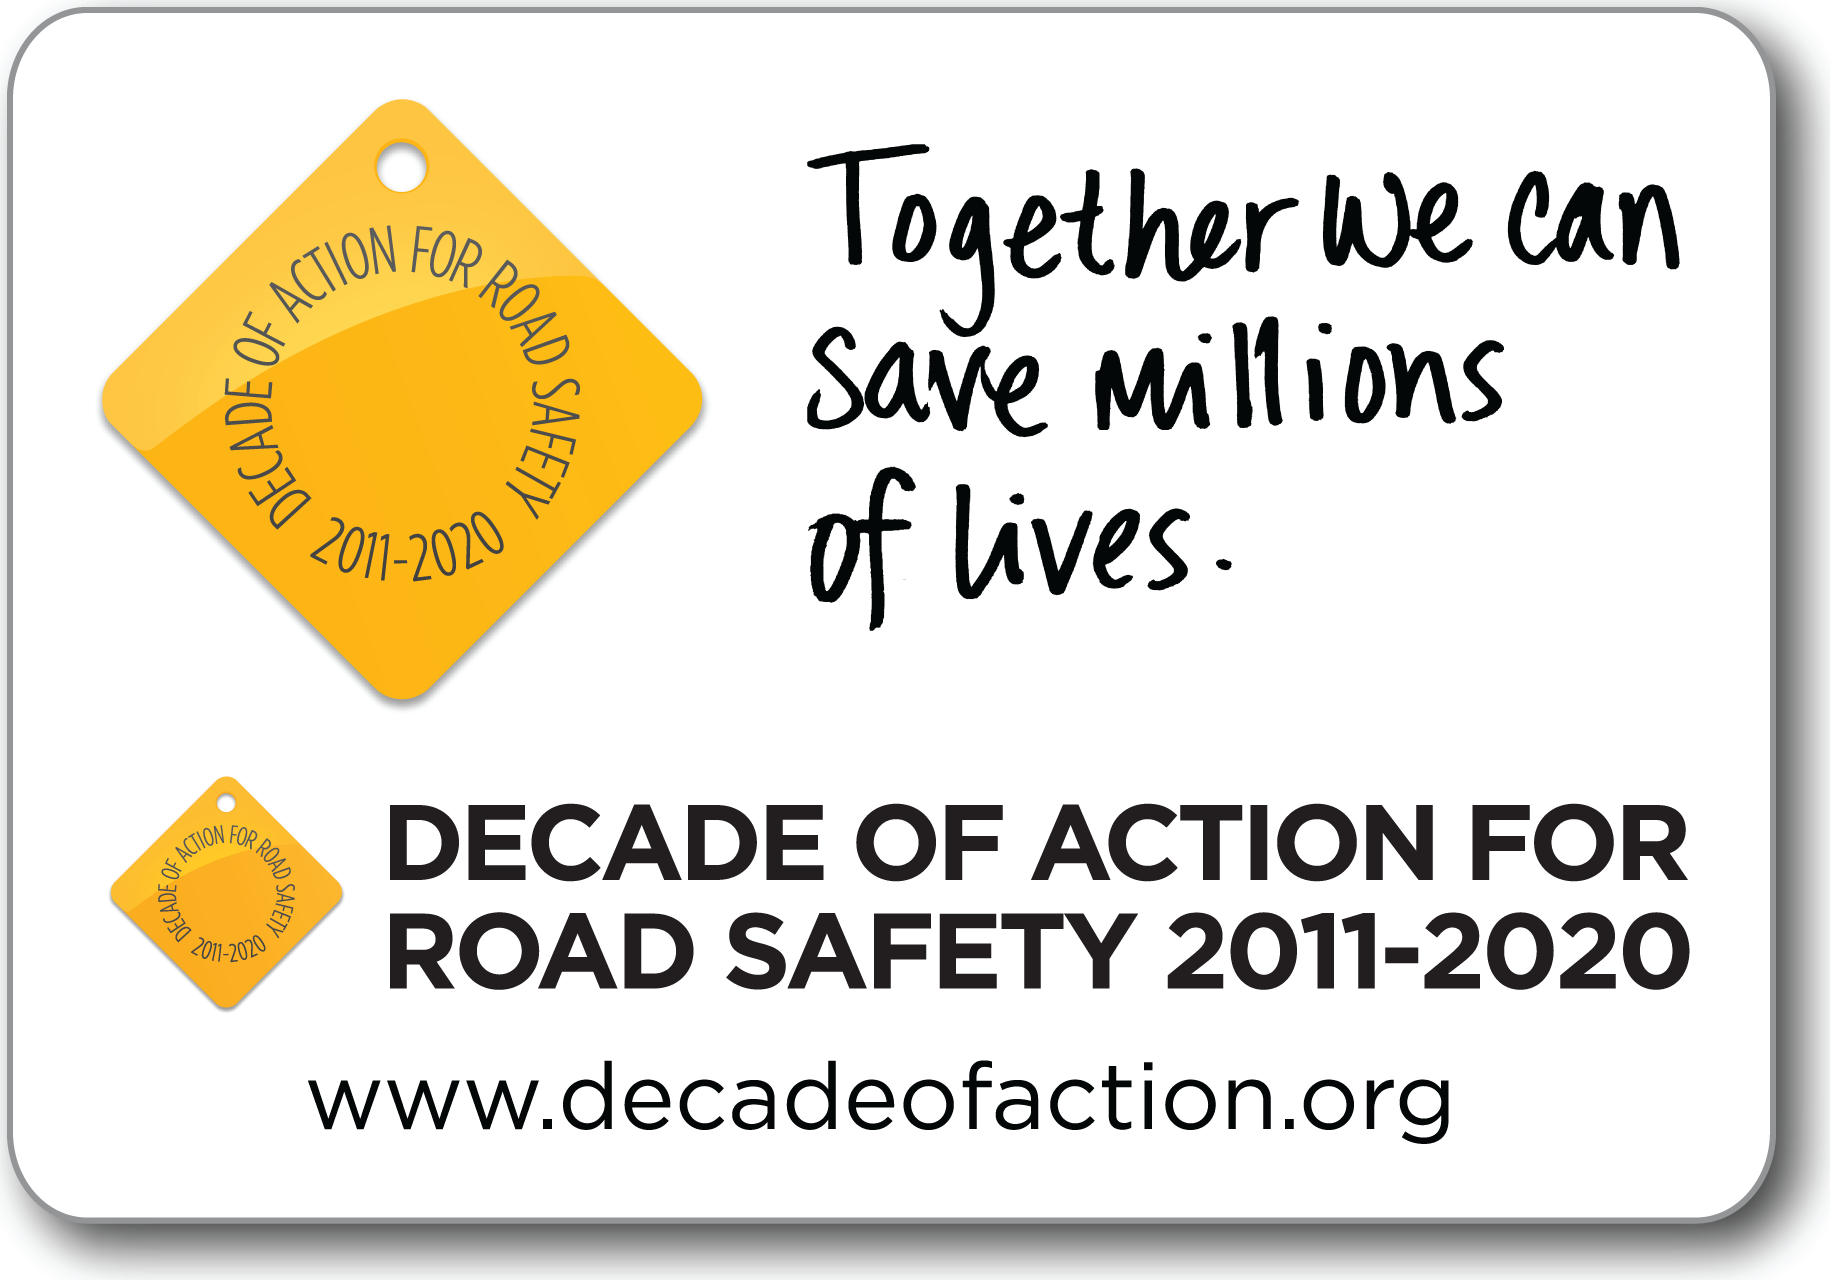 """The road safety """"tag"""" is a powerful symbol of the fight against suffering, grief and injustice caused by road deaths and injuries. Image via decadeofaction.org."""